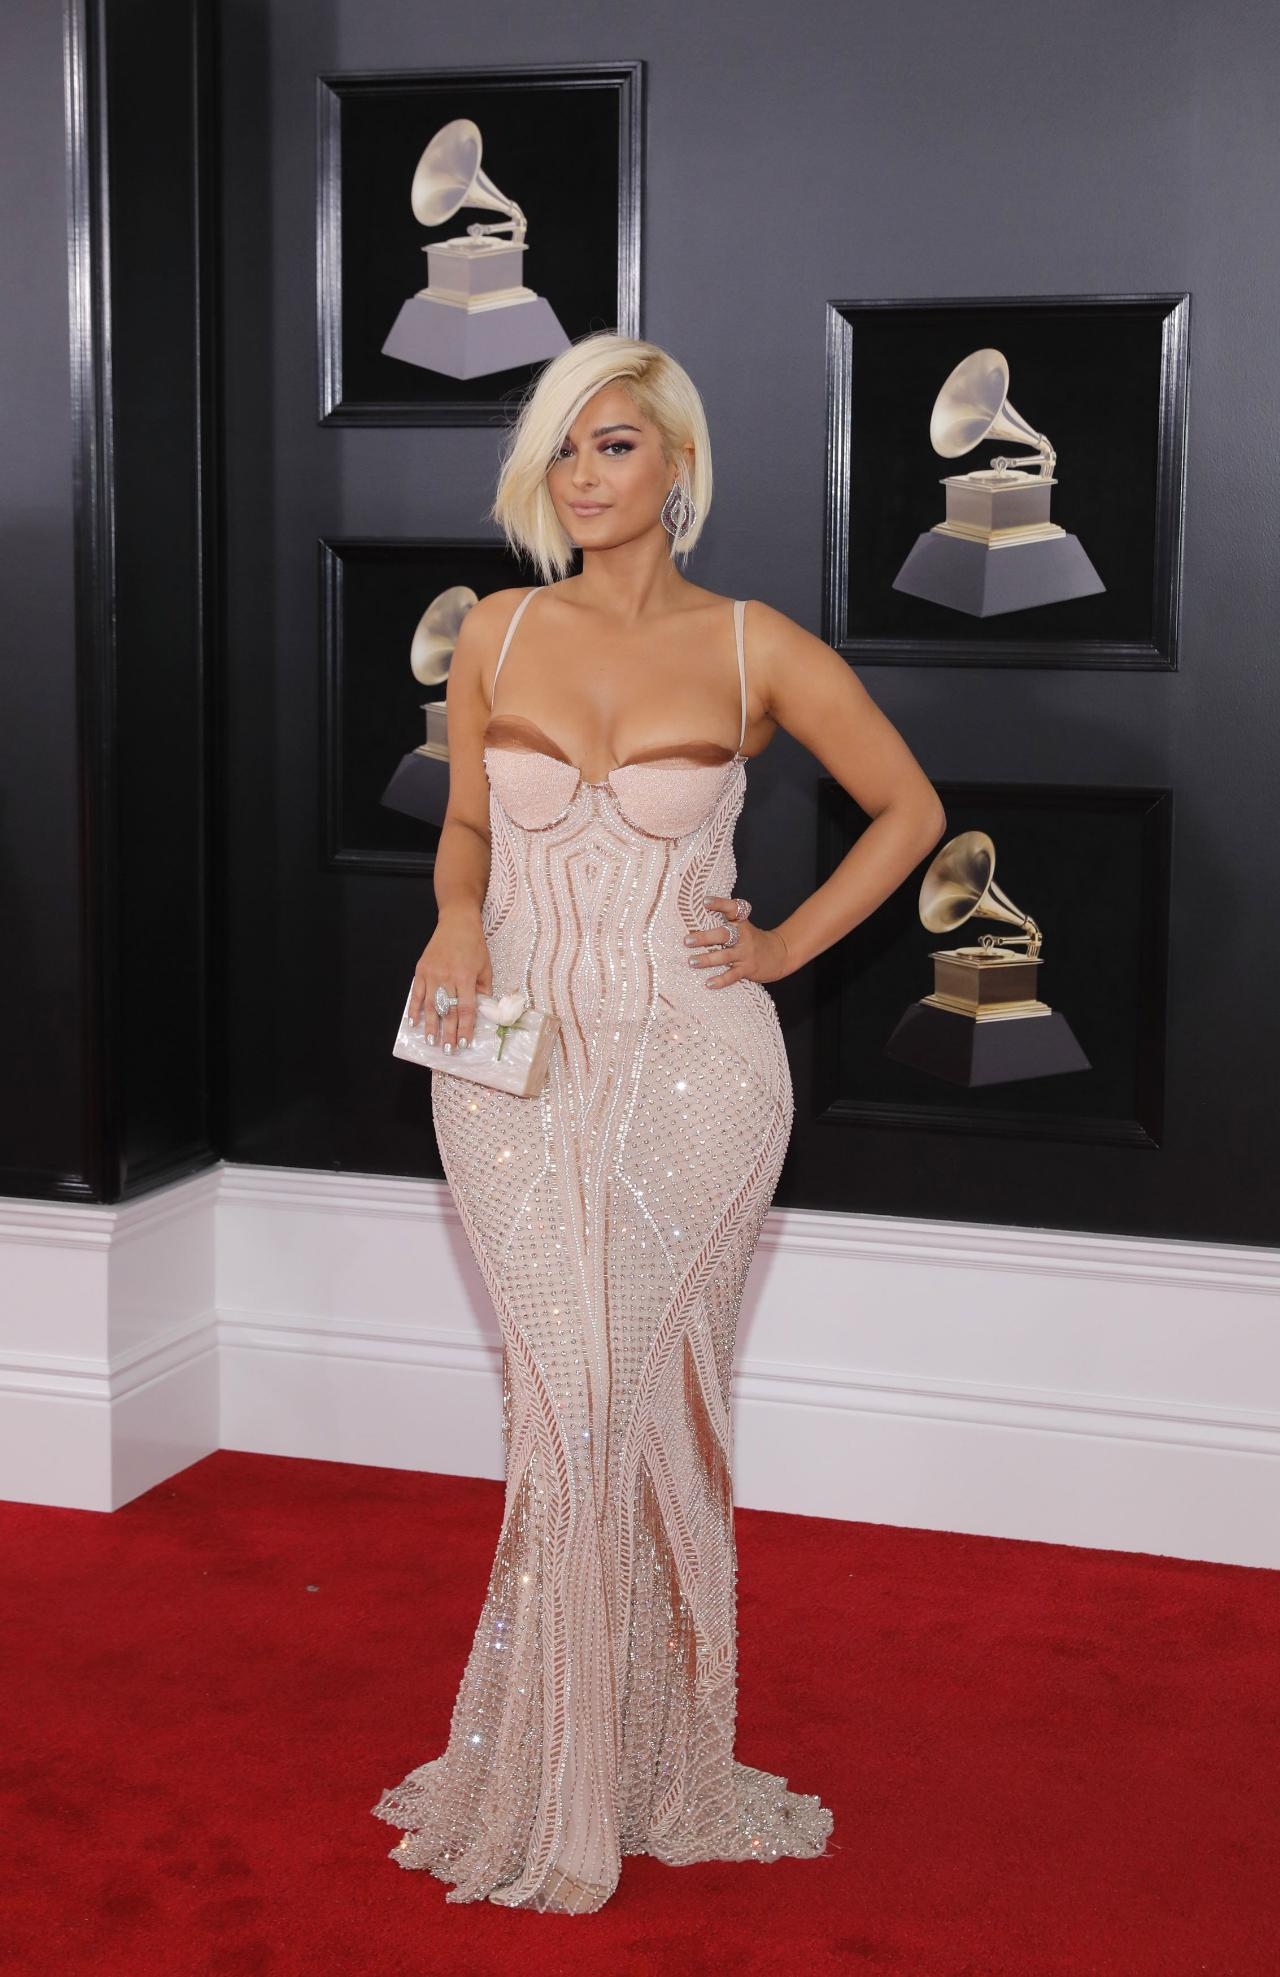 2018-01-28T232458Z_942222134_HP1EE1S1T1LV6_RTRMADP_3_AWARDS-GRAMMYS_resized